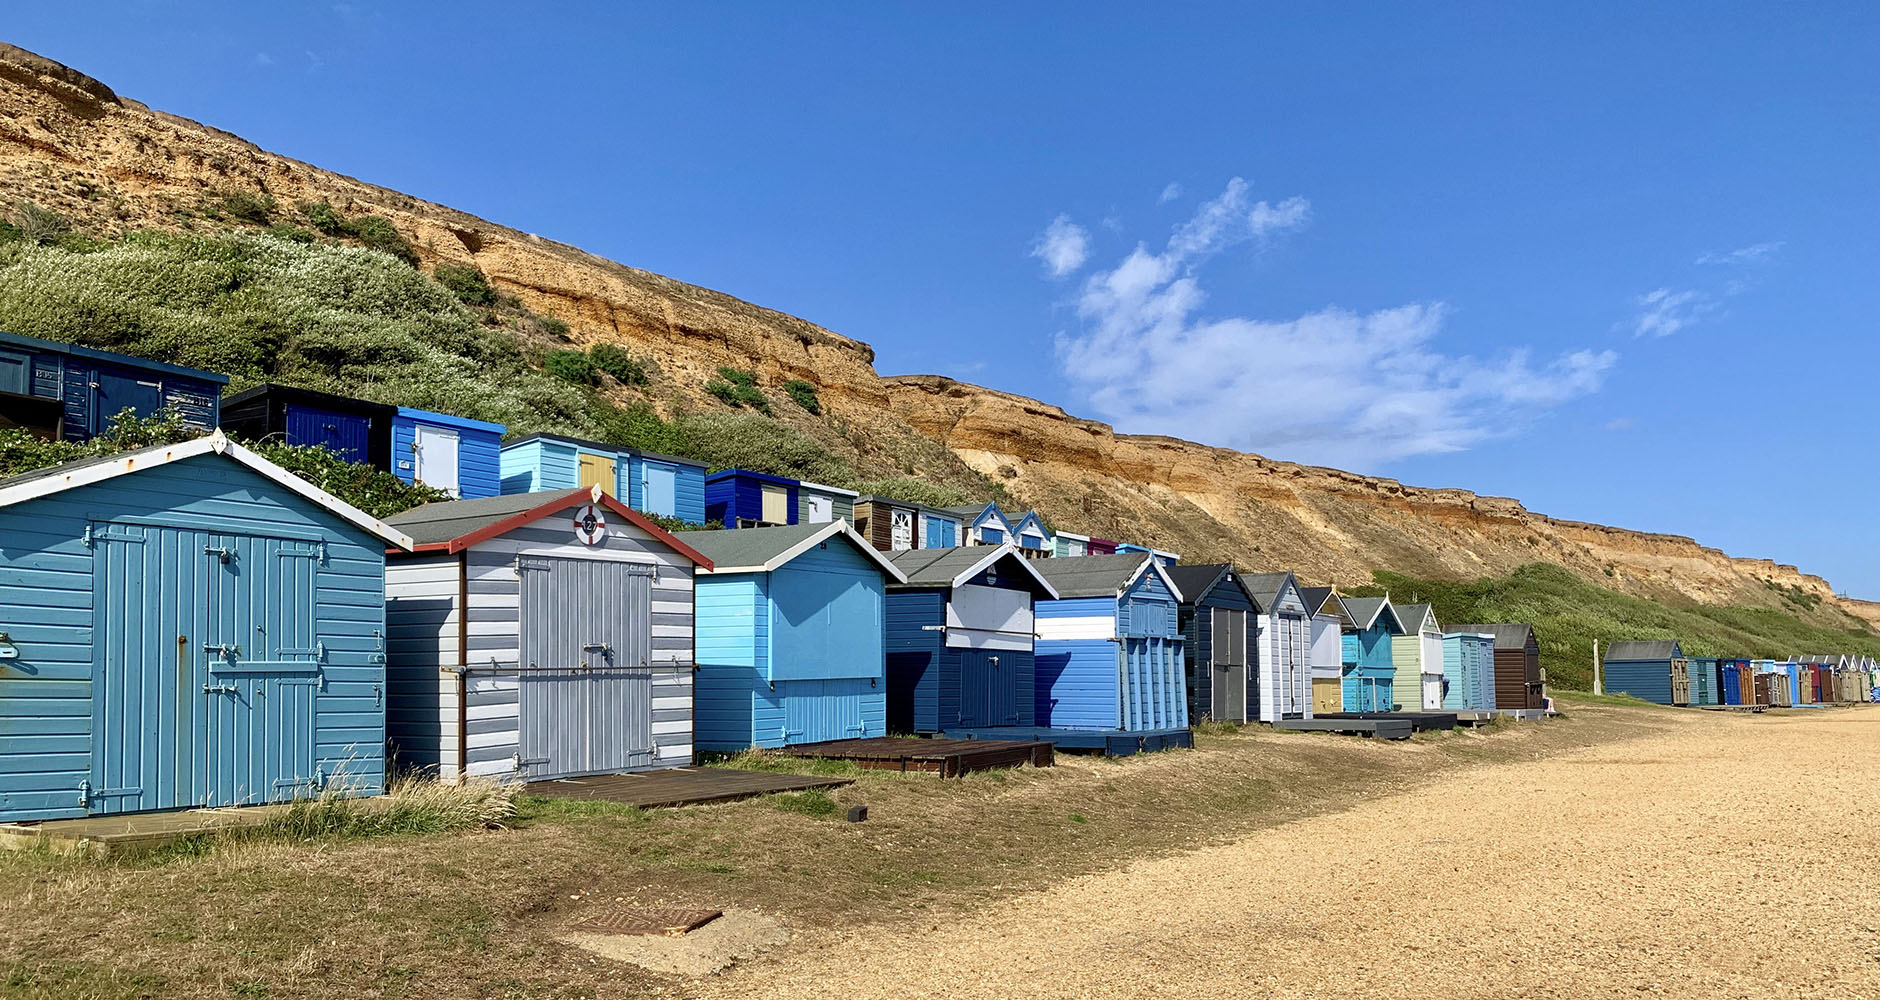 Bright coloured beach huts in Barton-on-Sea